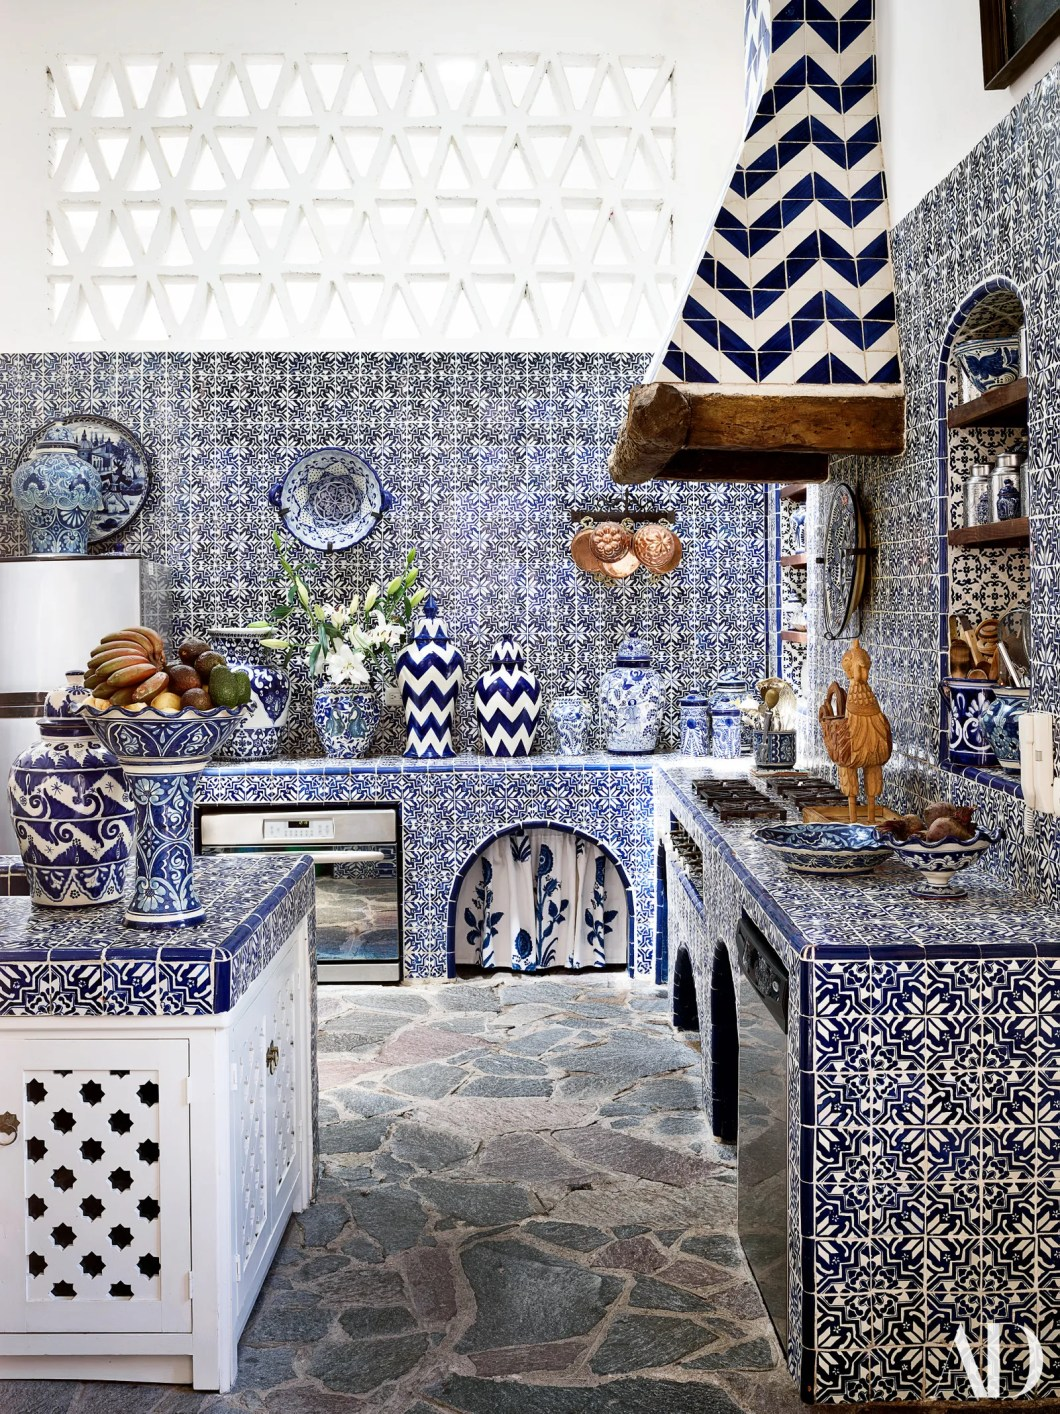 Custom tiles by Nussbaumer from Ceylon et Cie cover the kitchen. Mix of vintage and new jars.